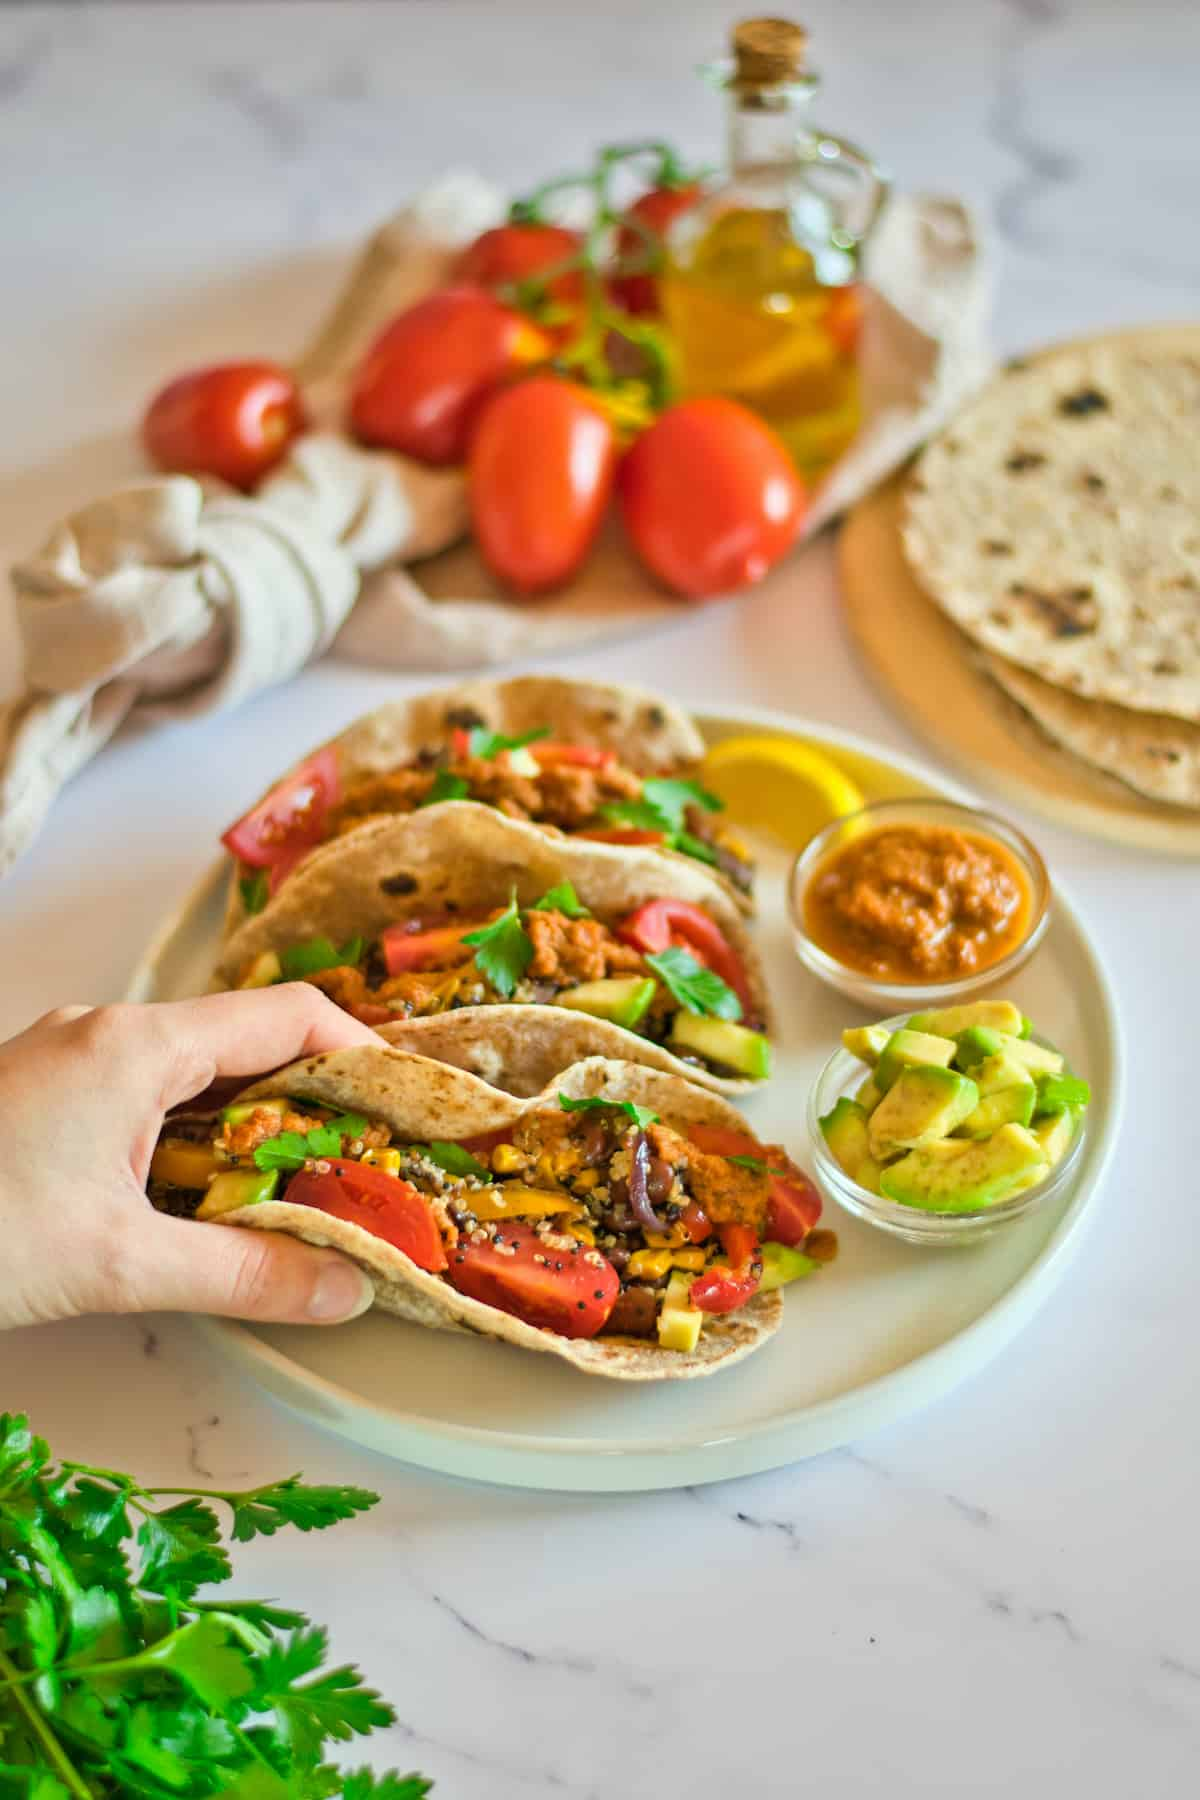 Quinoa tacos on plate with hand holding one.